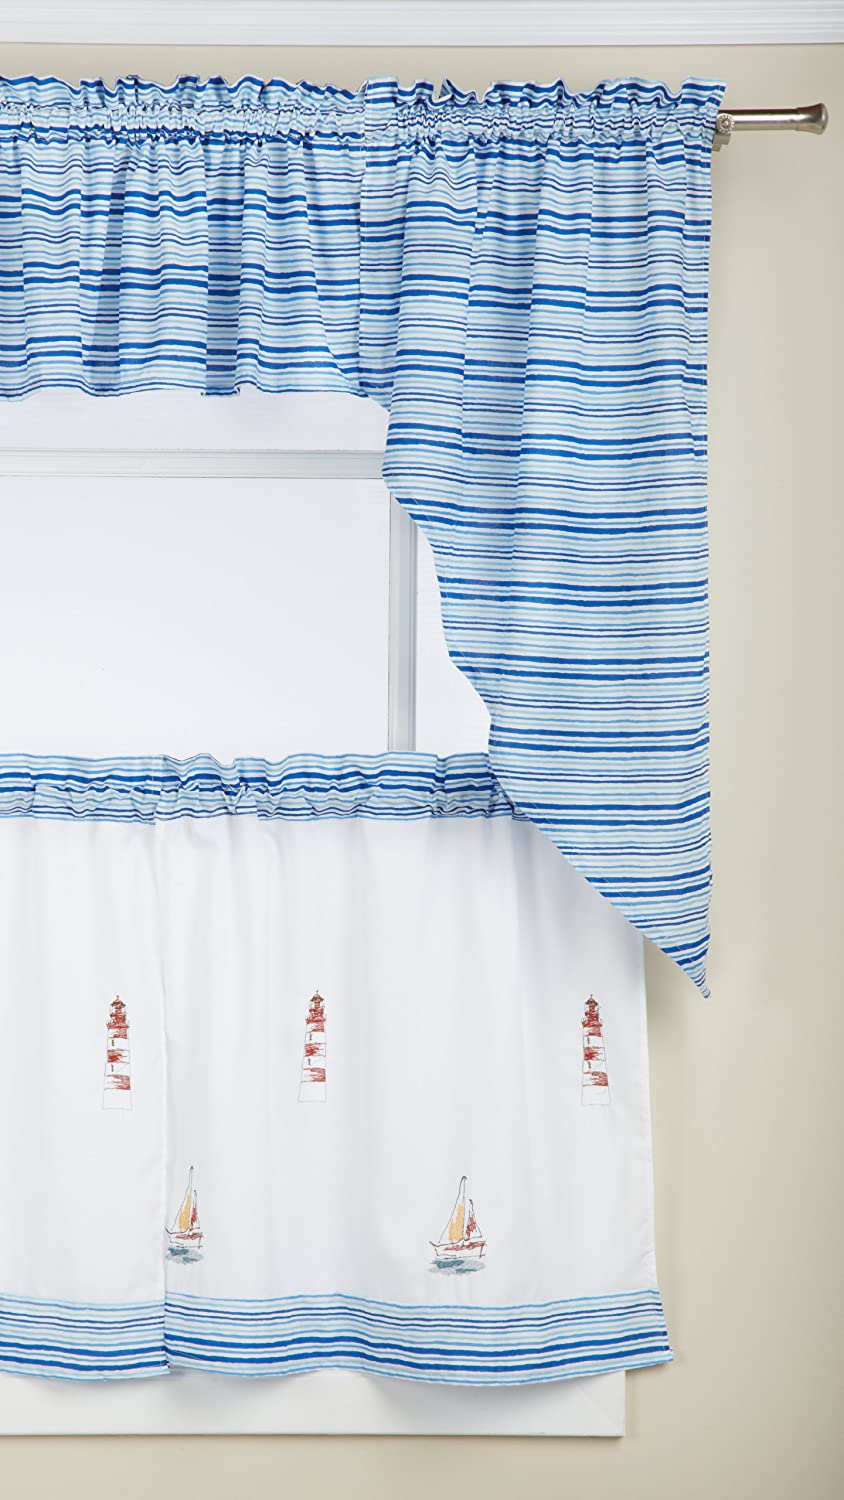 Blue Lorraine Home Fashions Home 00719-36-00003 LORRAINE HOME FASHIONS Annapolis Tier 56 by 36-Inch